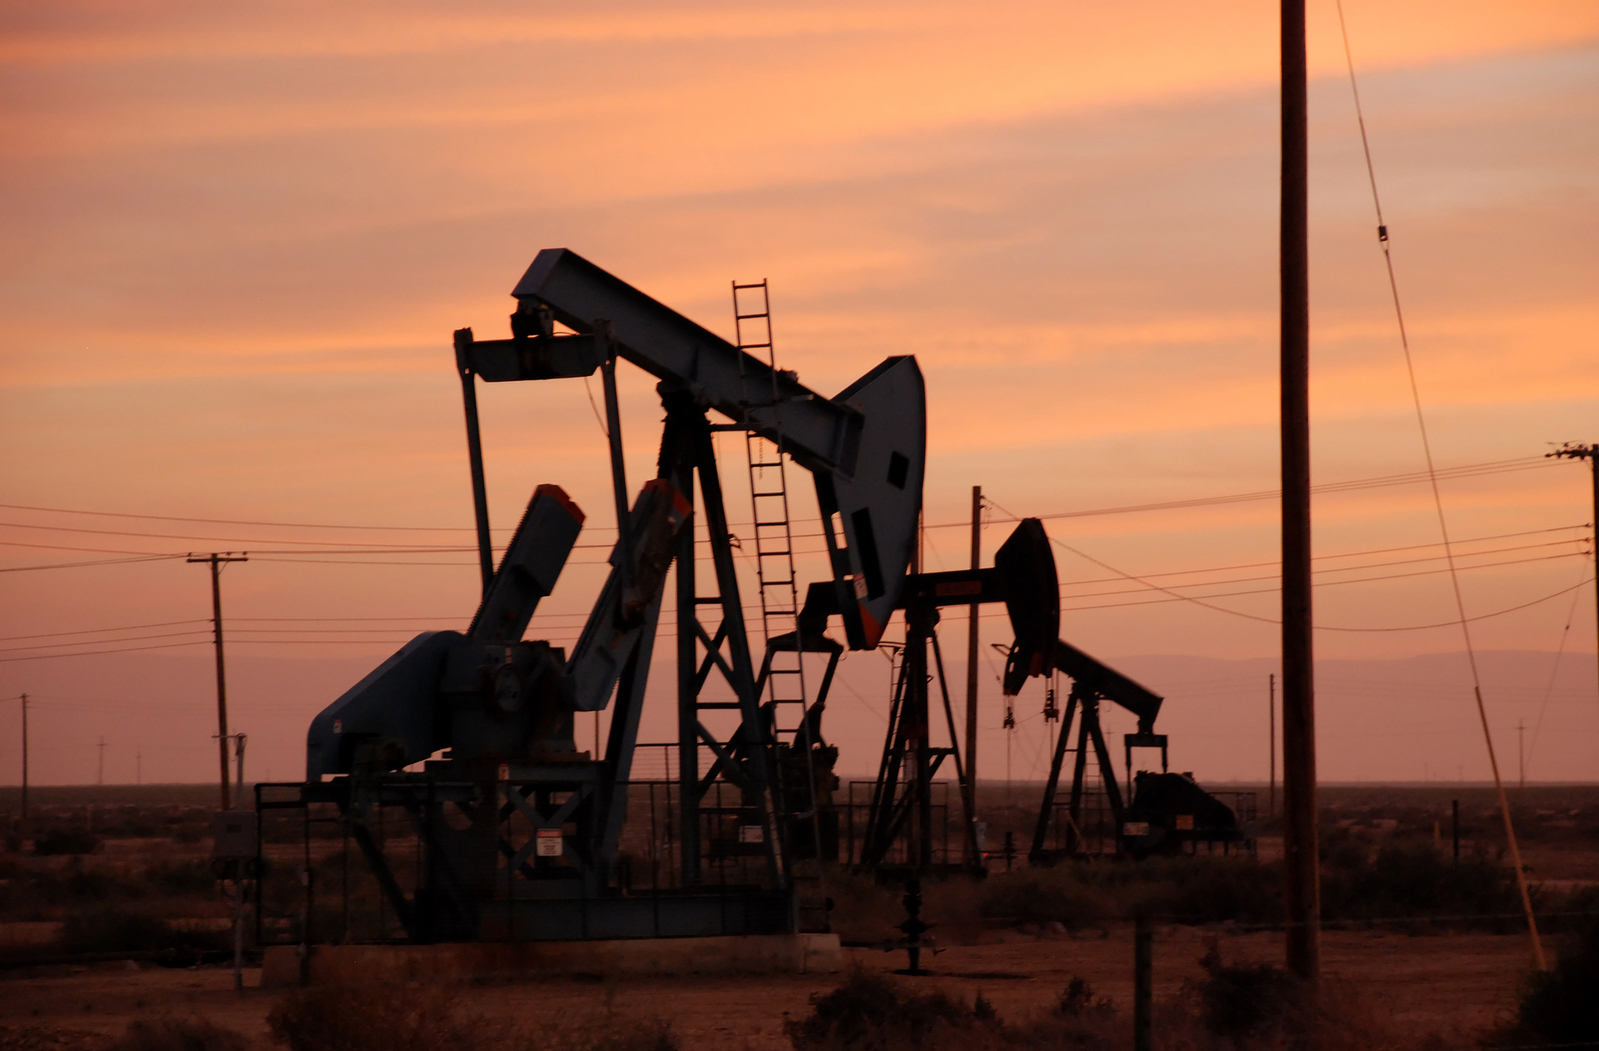 A Tightening Market and Syrian Conflict Spark Soaring Oil Prices